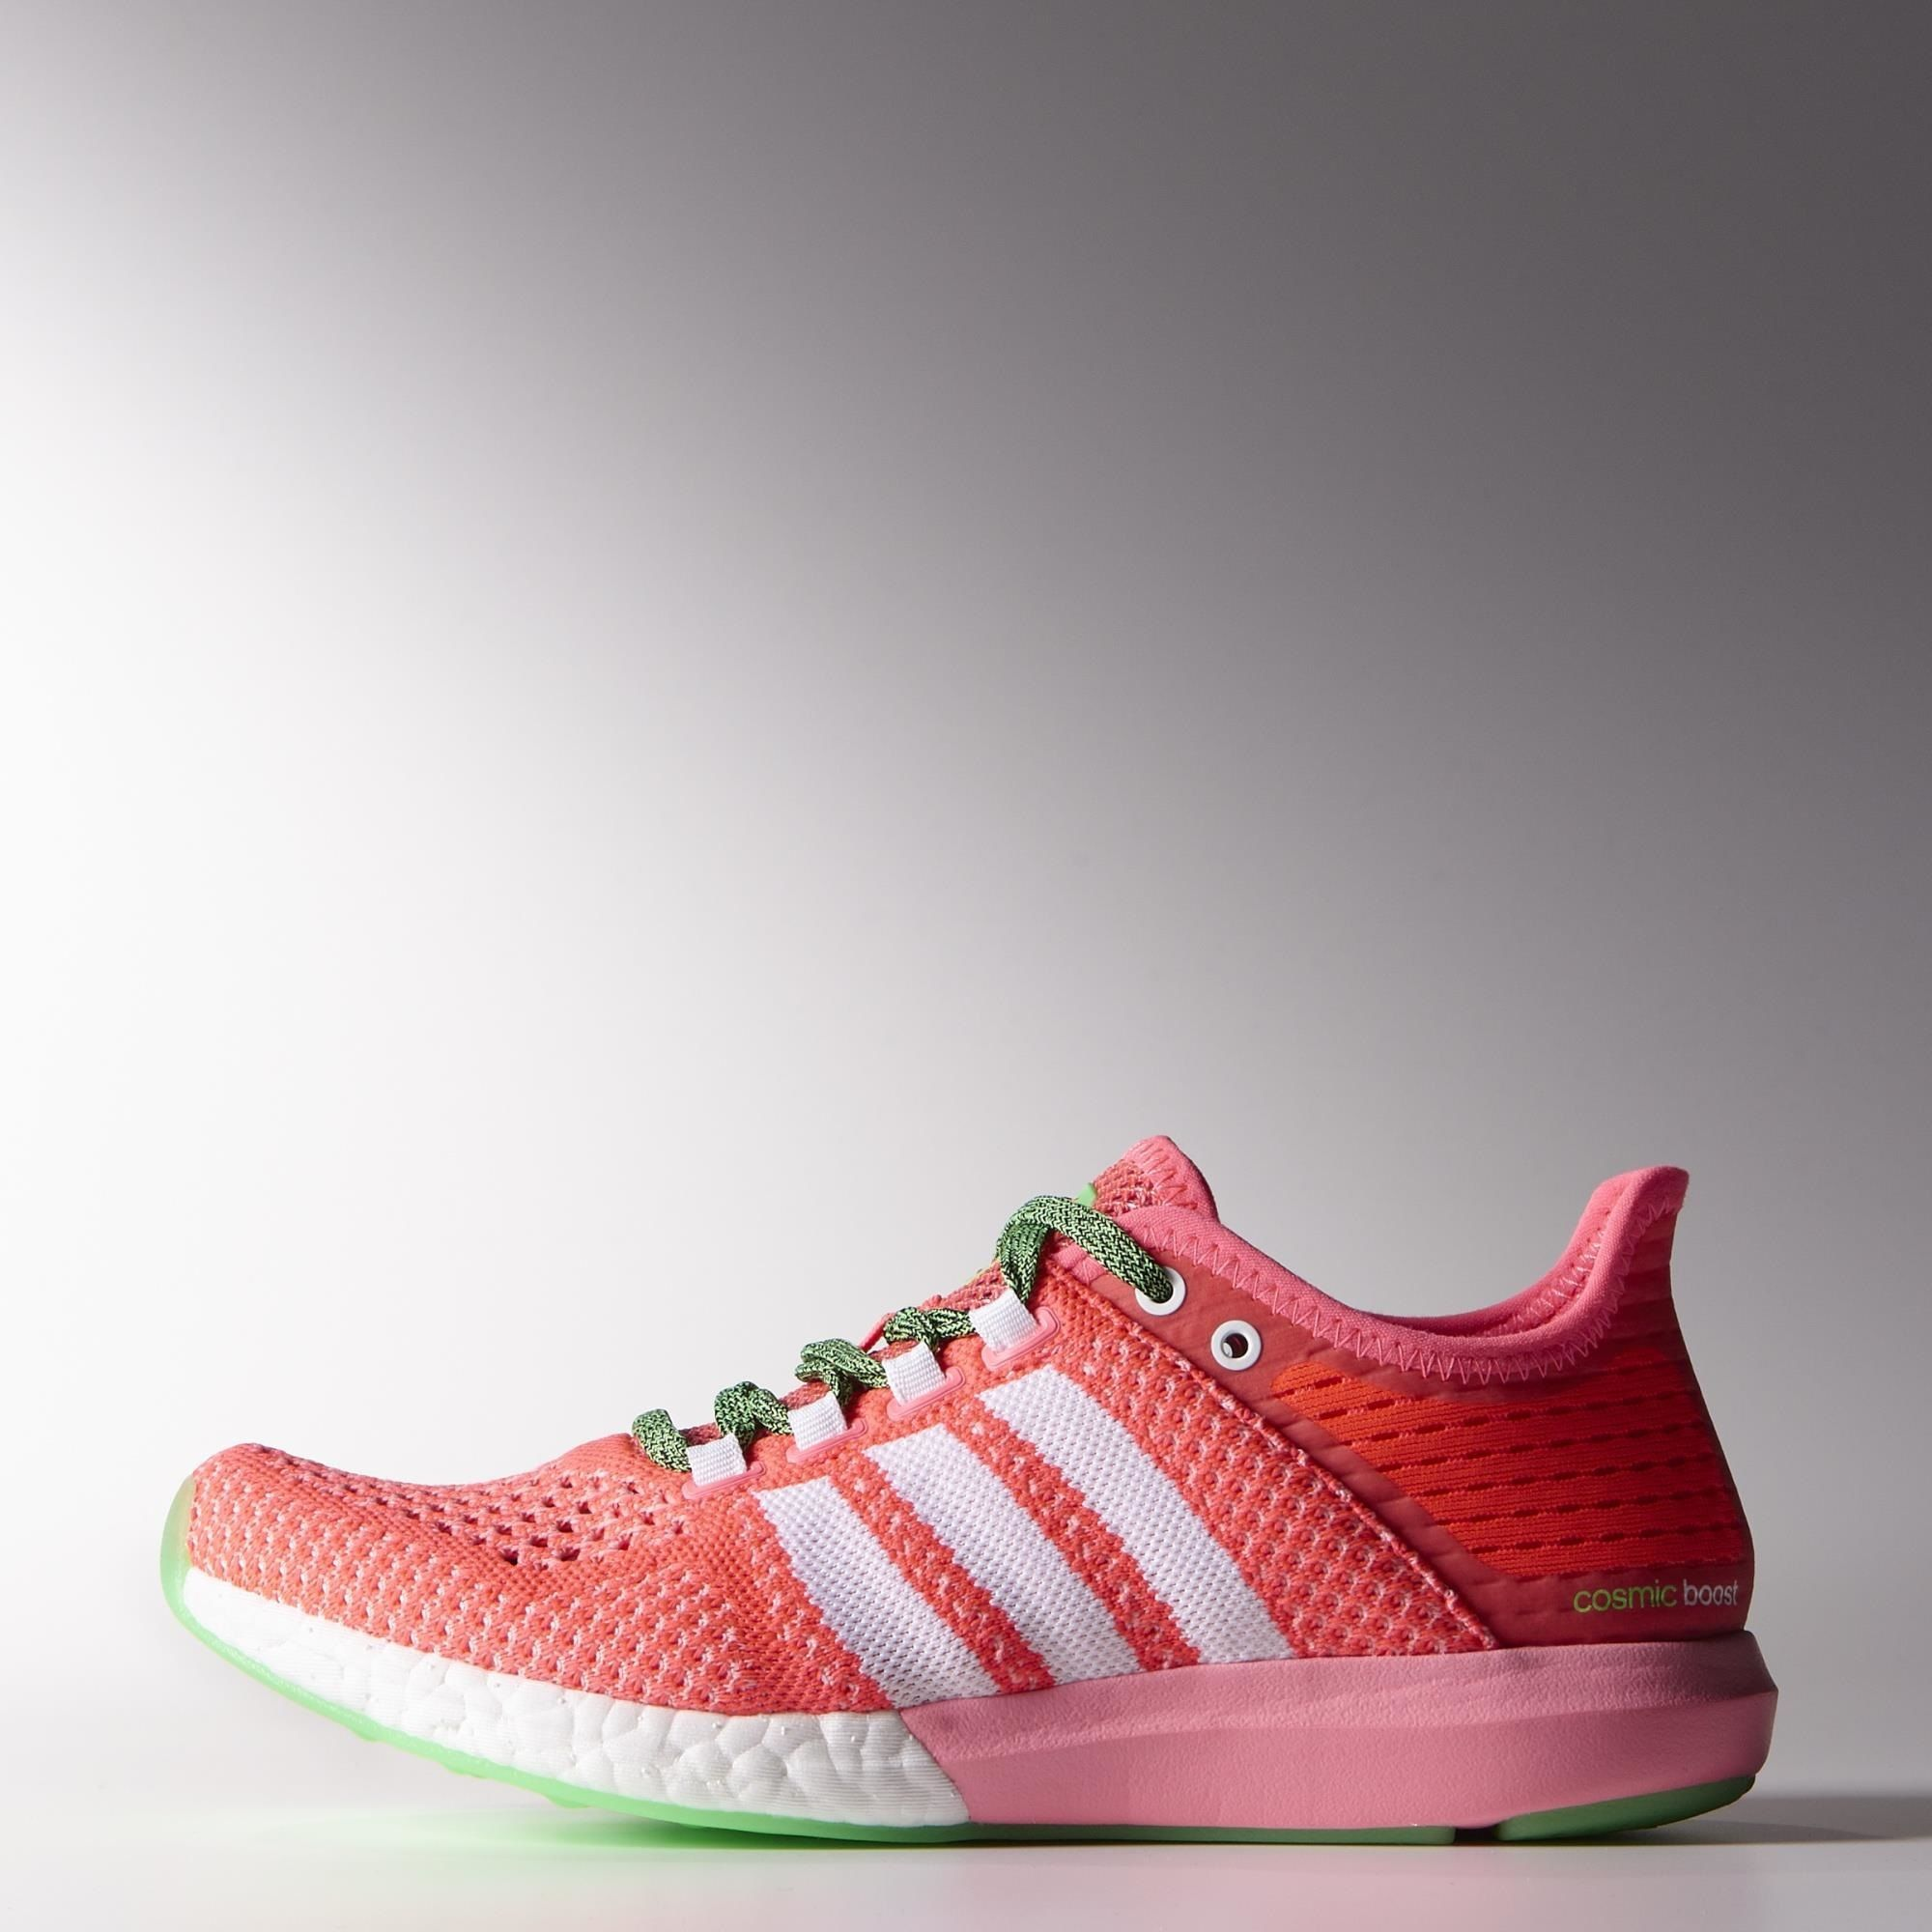 adidas - Climachill Cosmic Boost Shoes | These are supposed to be great for  hot weather